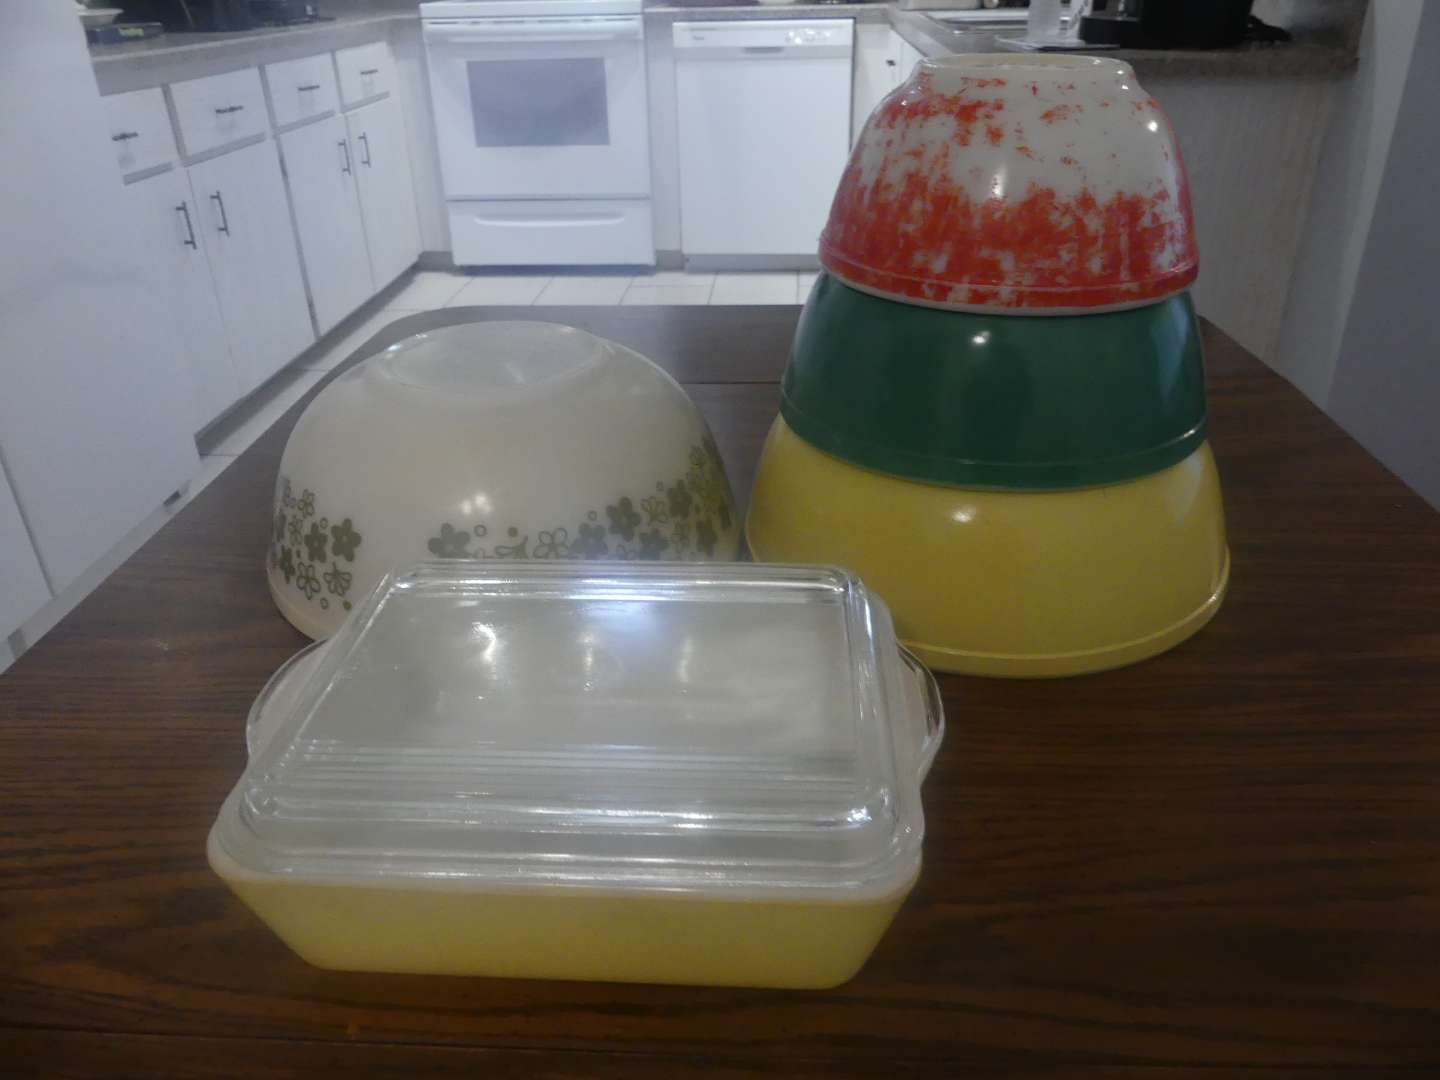 Lot #38 4 Nesting Pyrex Bowls and Pyrex 503-B Casserole with Clear Lid